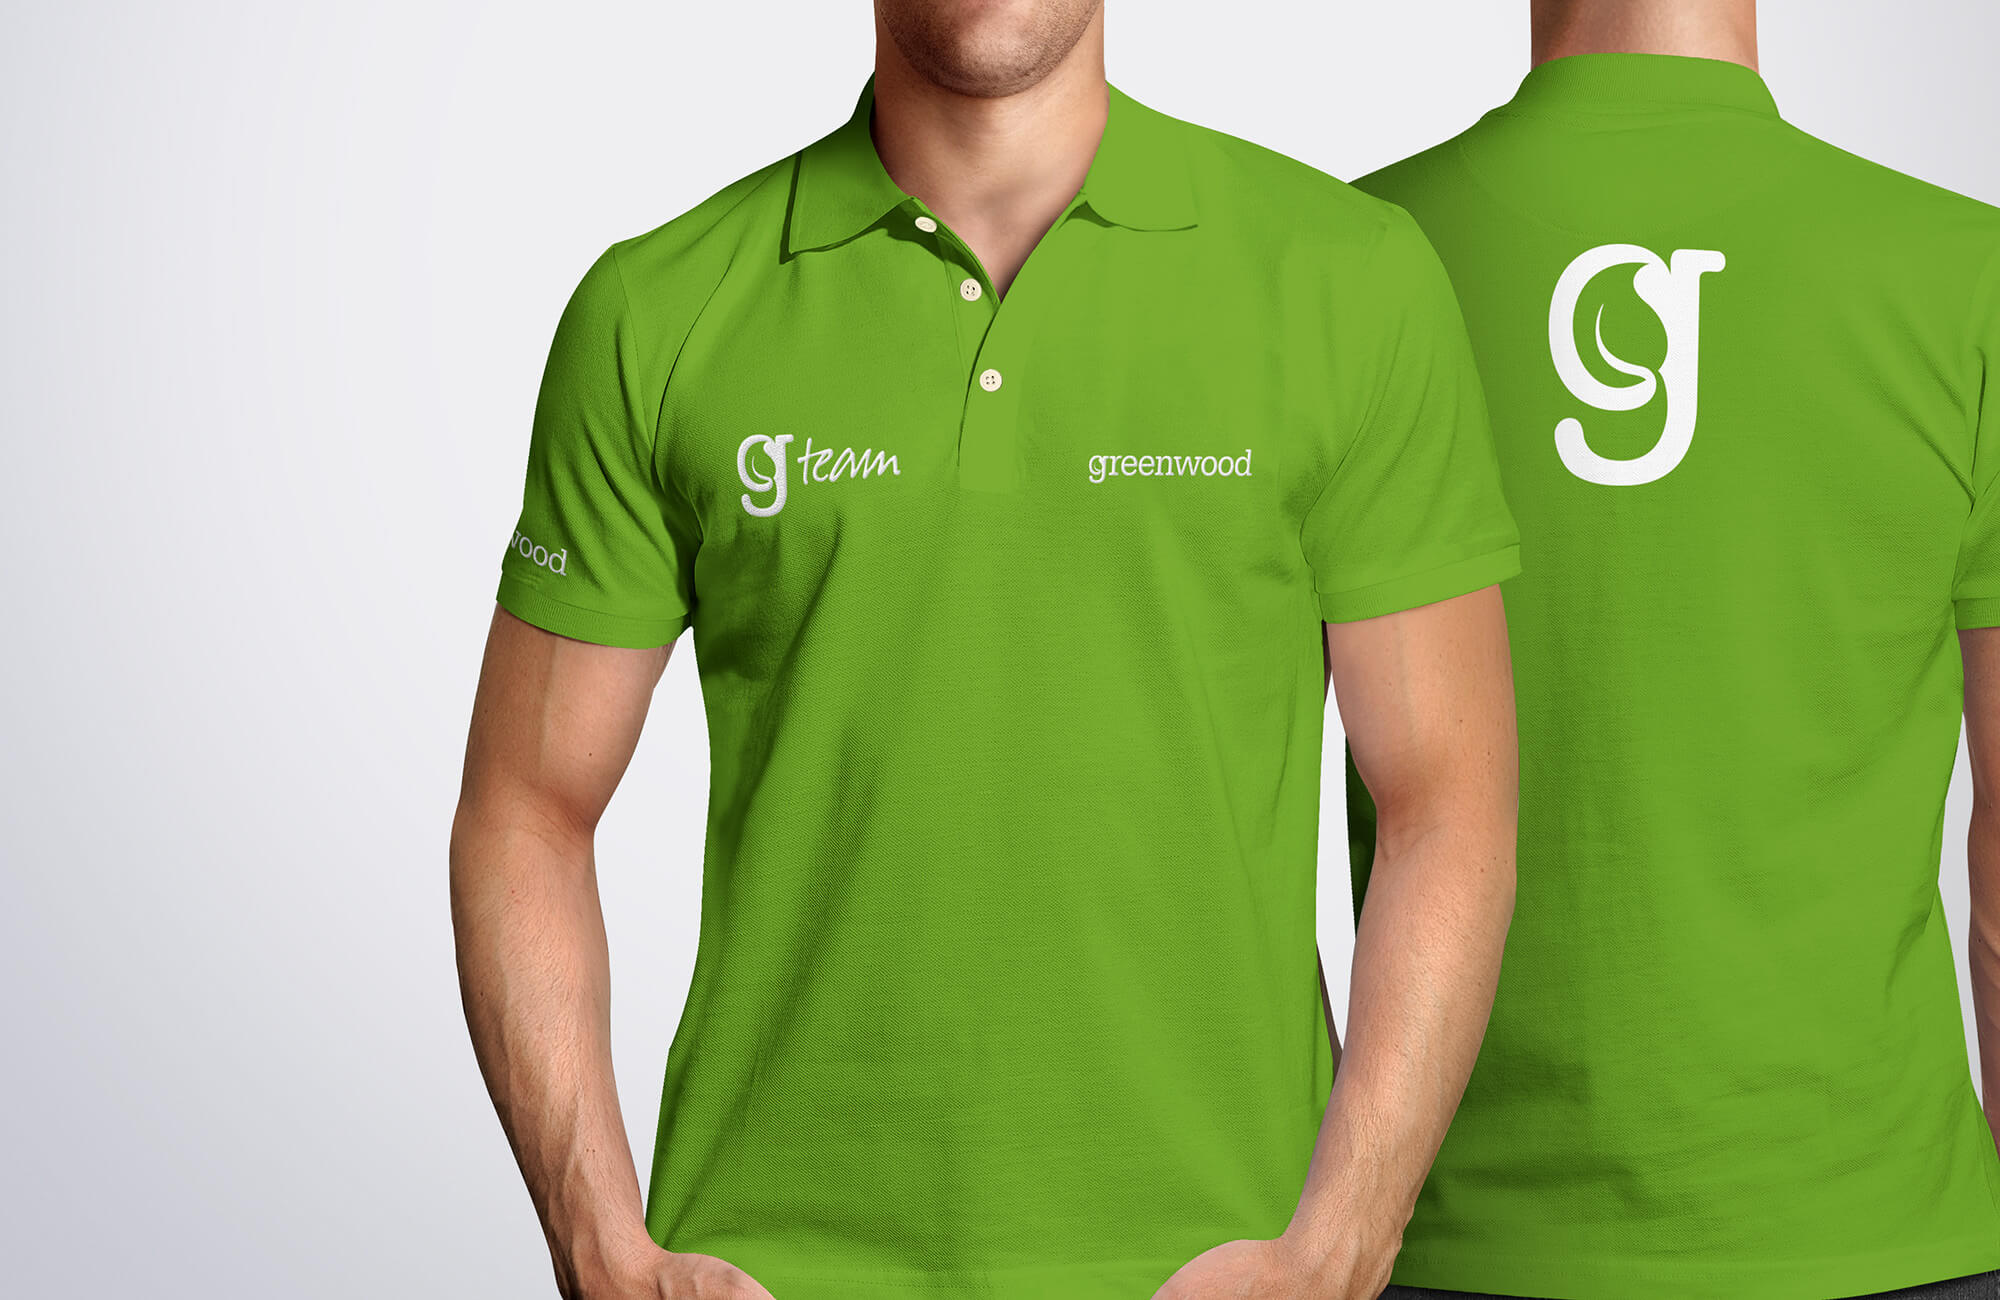 Greenwood Branded Polo Shirt Design Concept